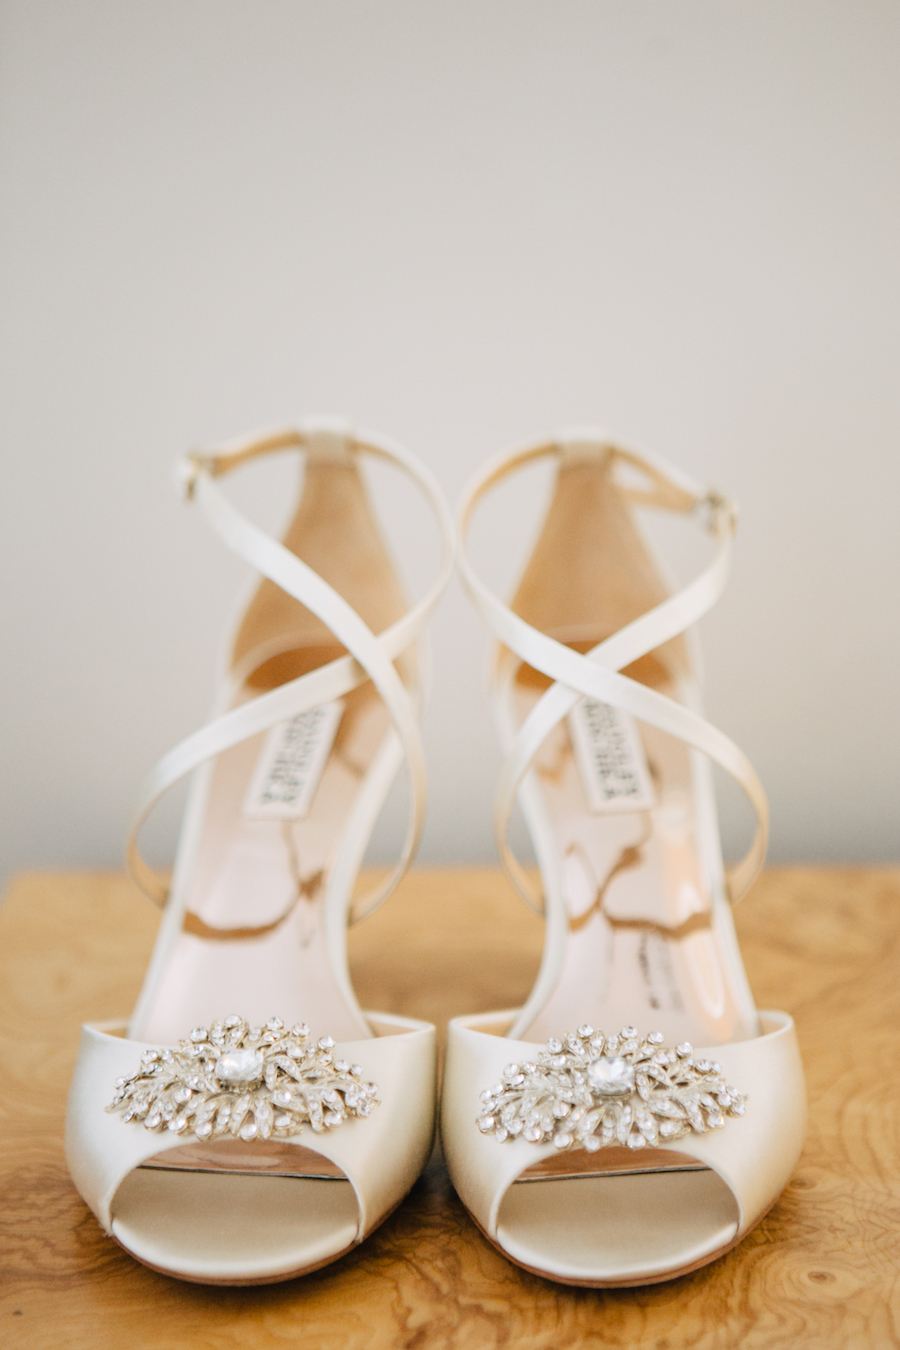 ROQUE Events - Amber and Vince - Courtney Lindberg Photography - Napa Valley Wedding5.JPG